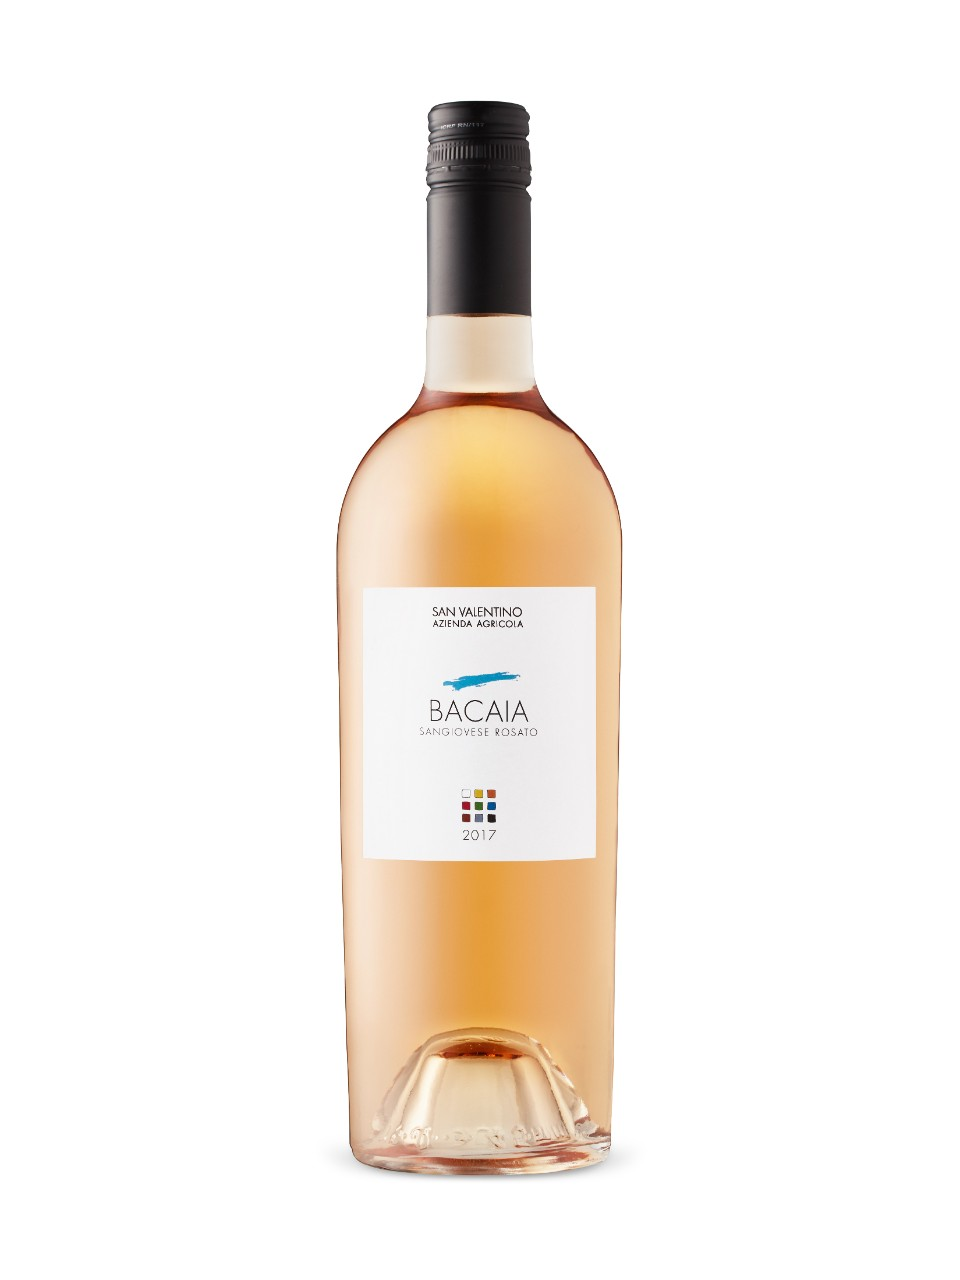 Image for Bacaia Rosato Sangiovese Rubico IGT 2017 from LCBO